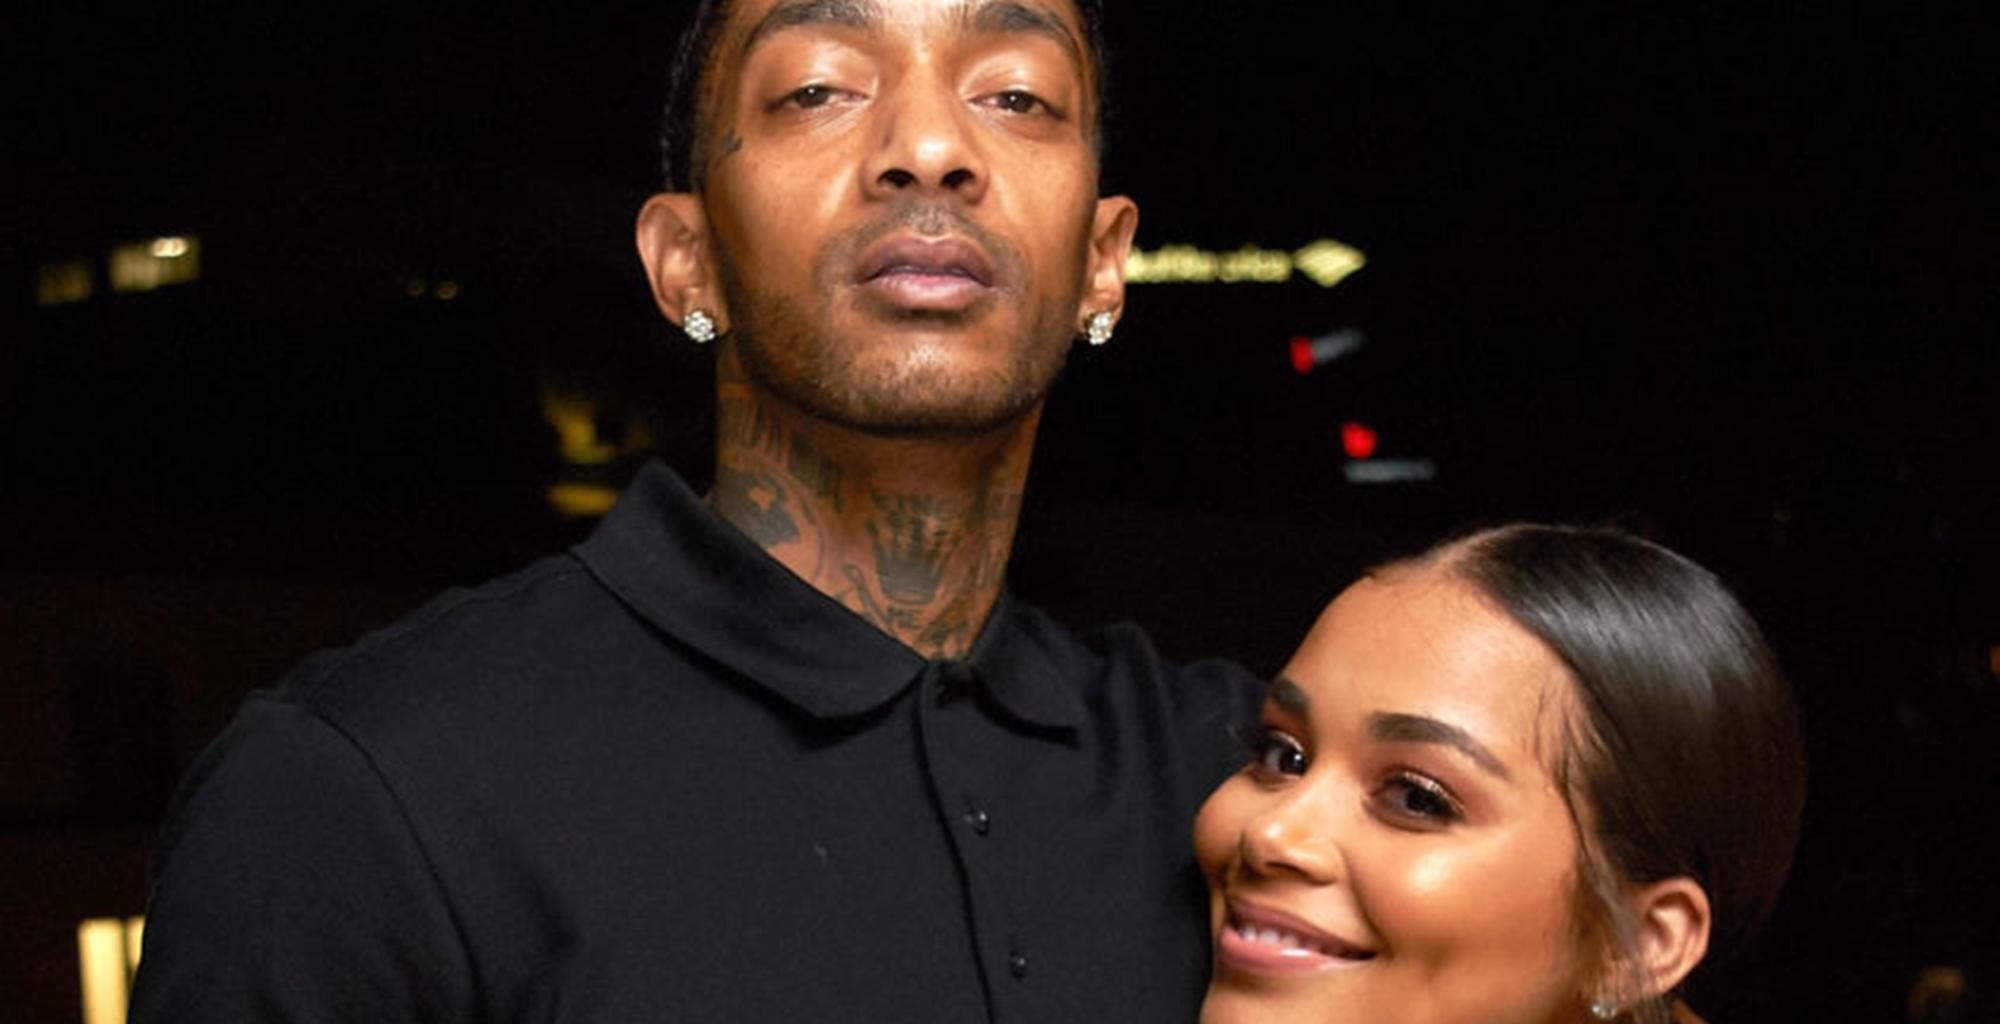 Lauren London Is Getting Shamed After Making This Announcement, Nipsey Hussle's Fans Are Fiercely Defending Her And Showering Her With Love